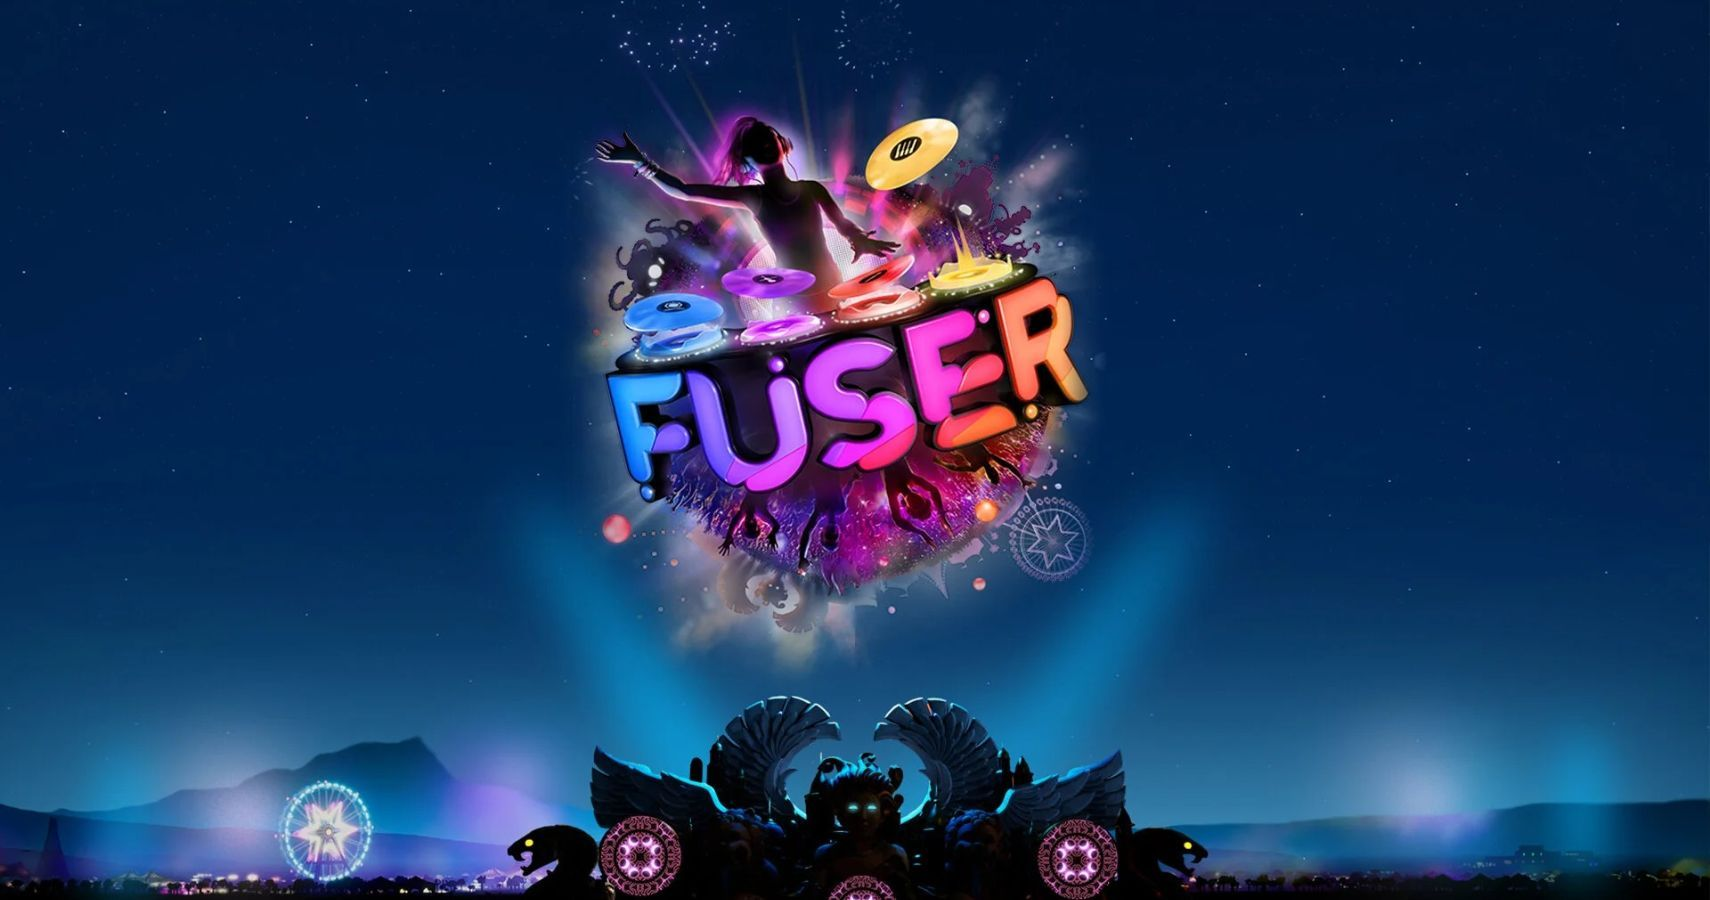 Fuser Adding New Tracks From Billie Eilish, The Cure, And Dirty Vegas